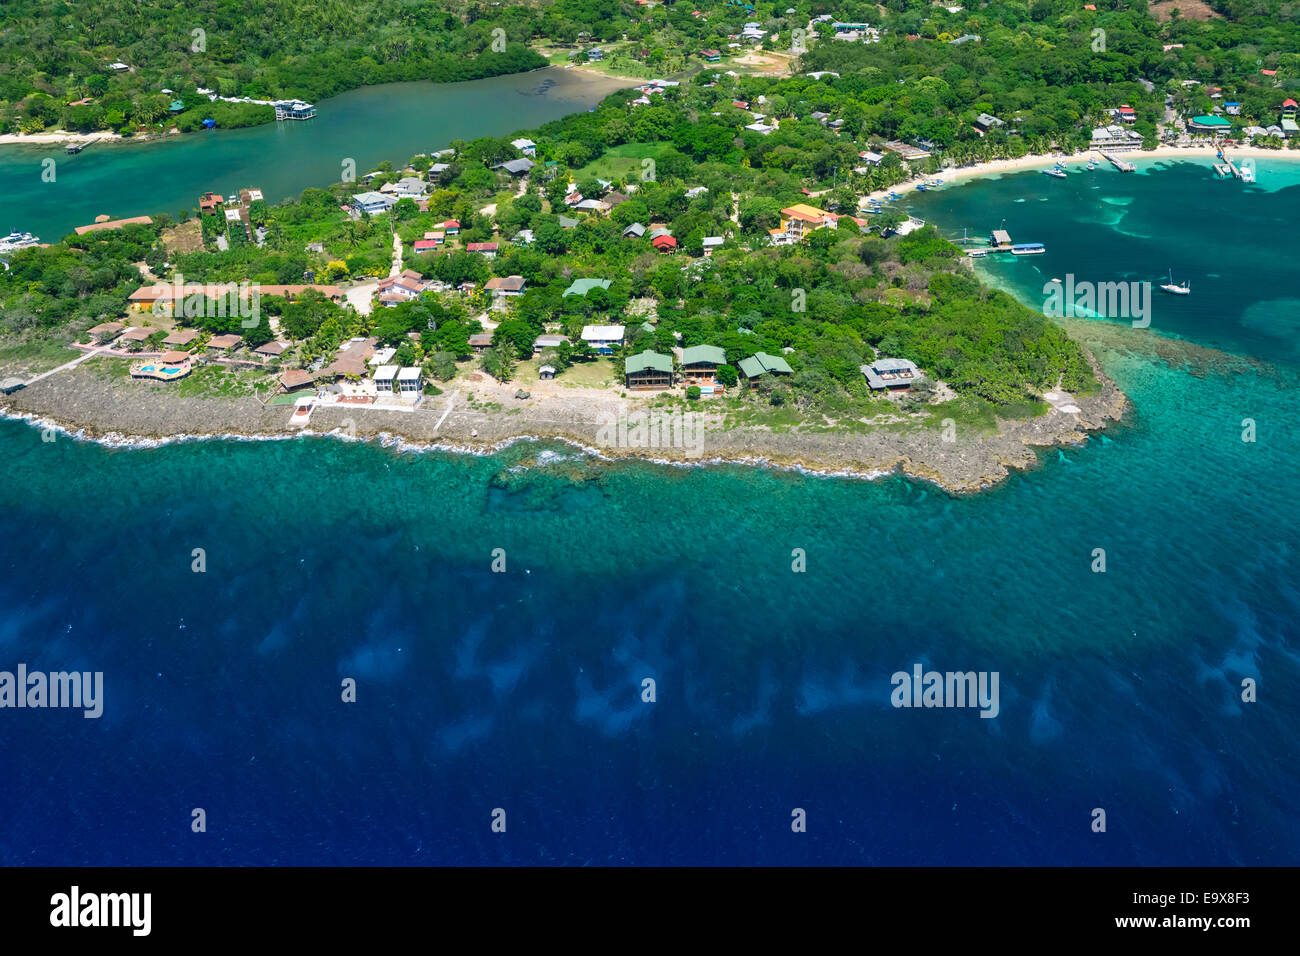 Aerial photo of Half Moon Bay, Roatan Honduras - Stock Image